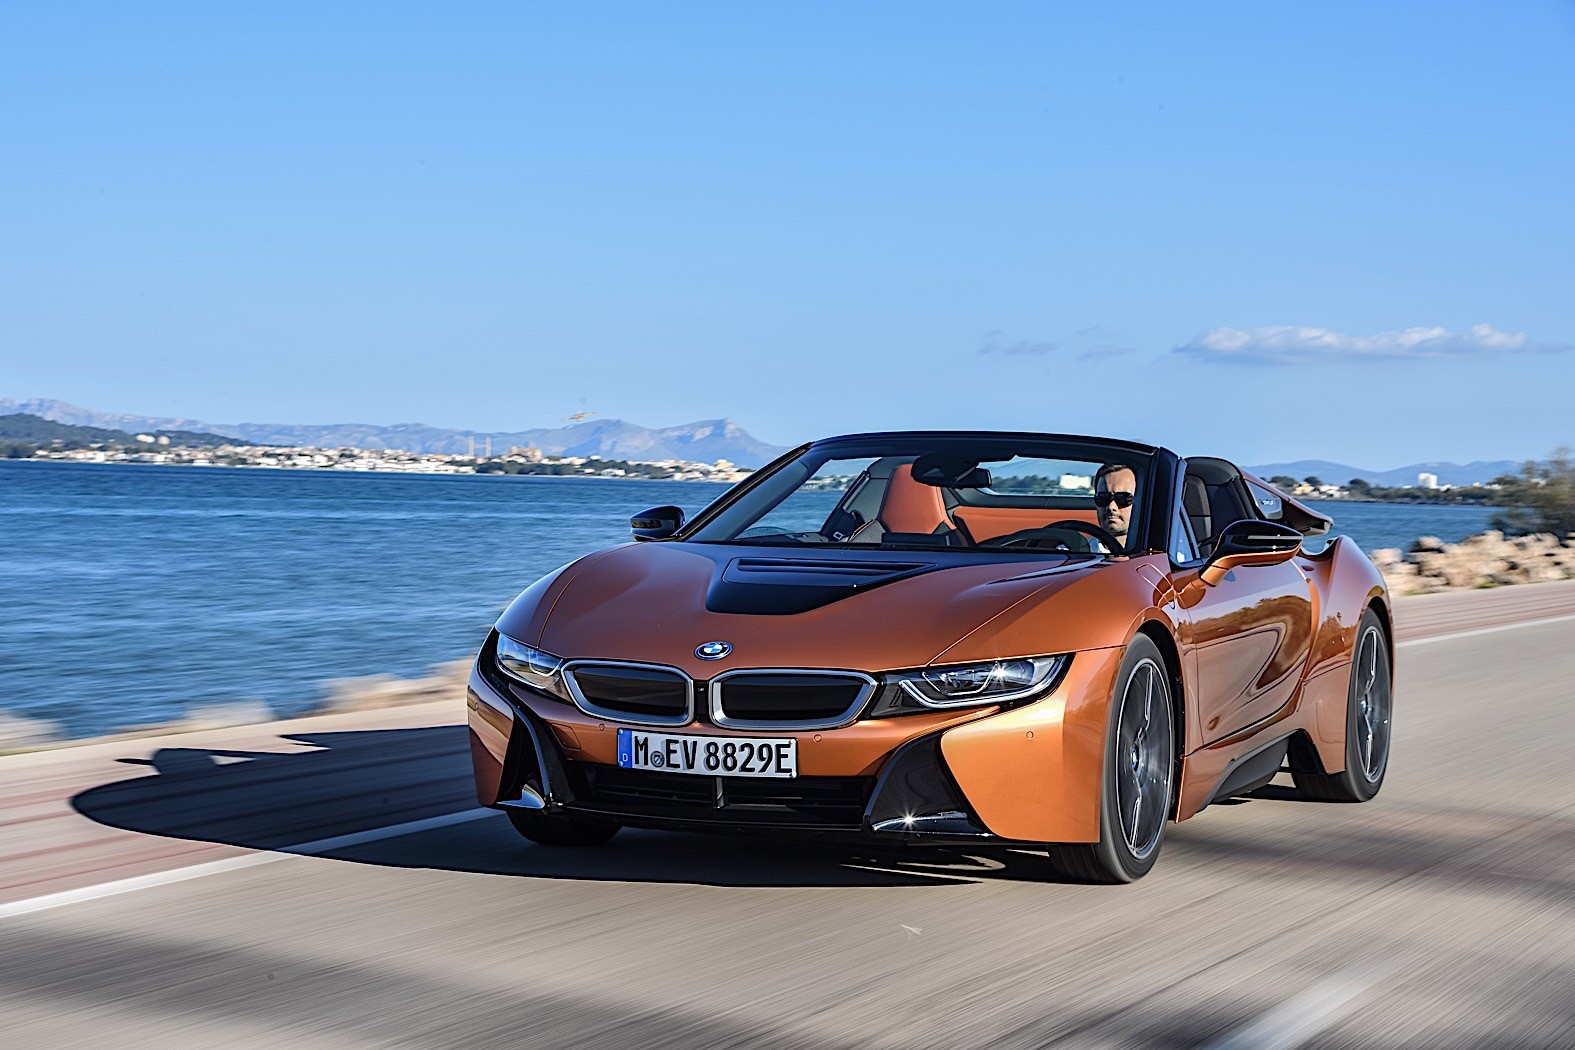 bmw i8 one of car magazine s most wanted cars of 2014. Black Bedroom Furniture Sets. Home Design Ideas